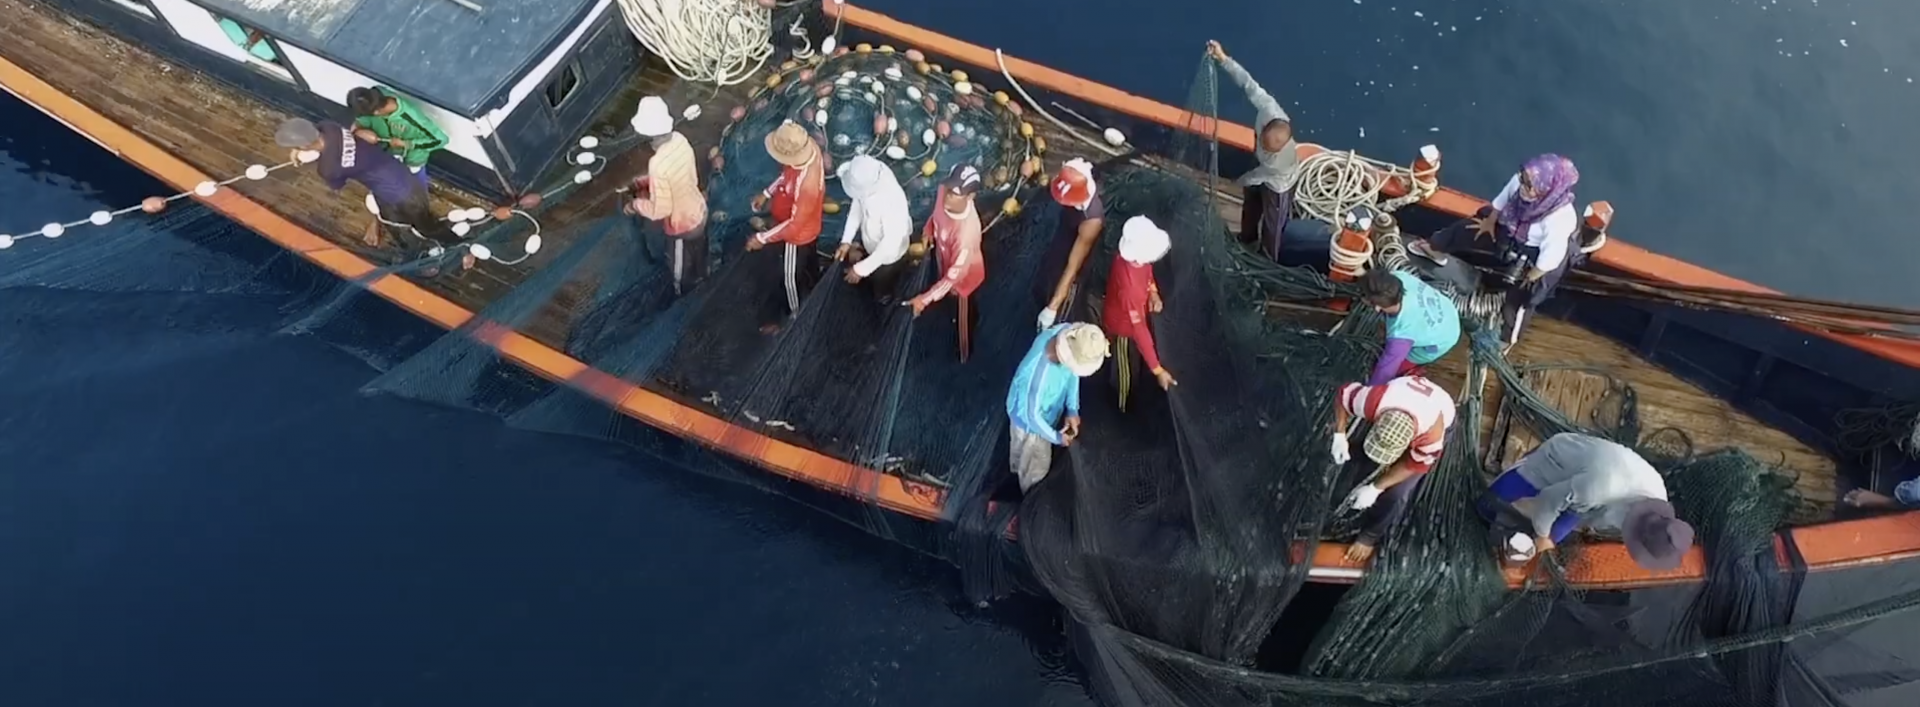 Small scale fisheries boat on ocean